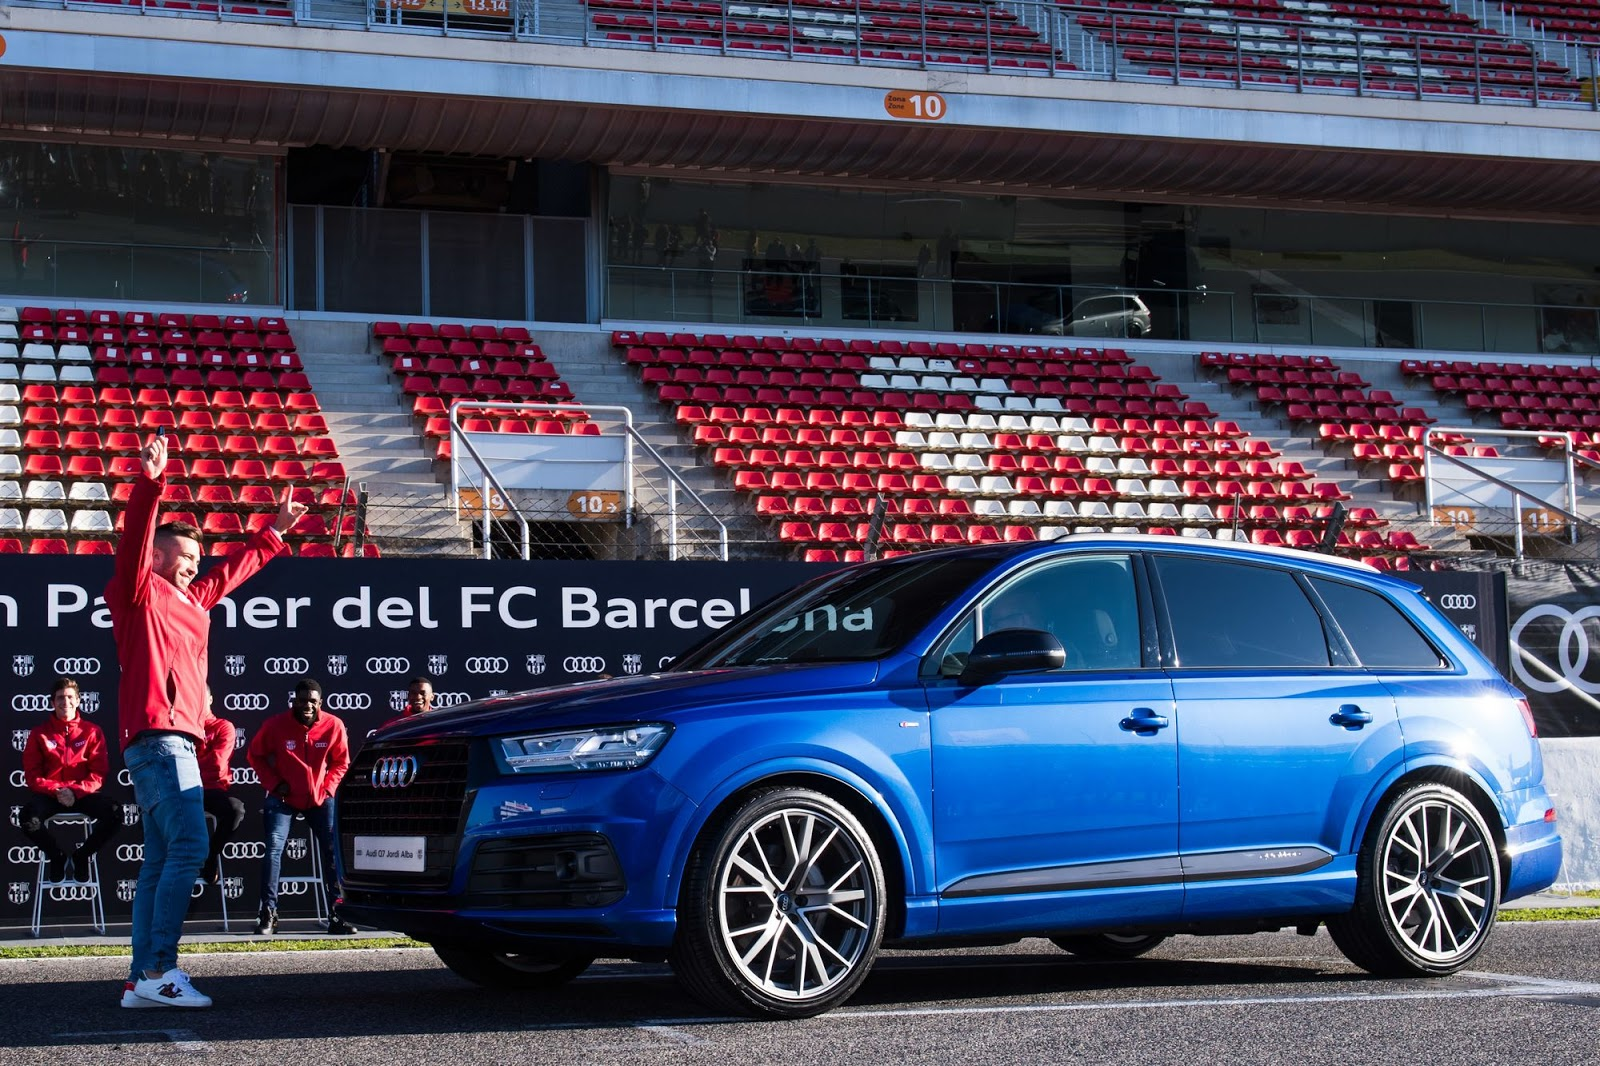 real madrid rival barcelona players  awardedc fleet  audis types cars